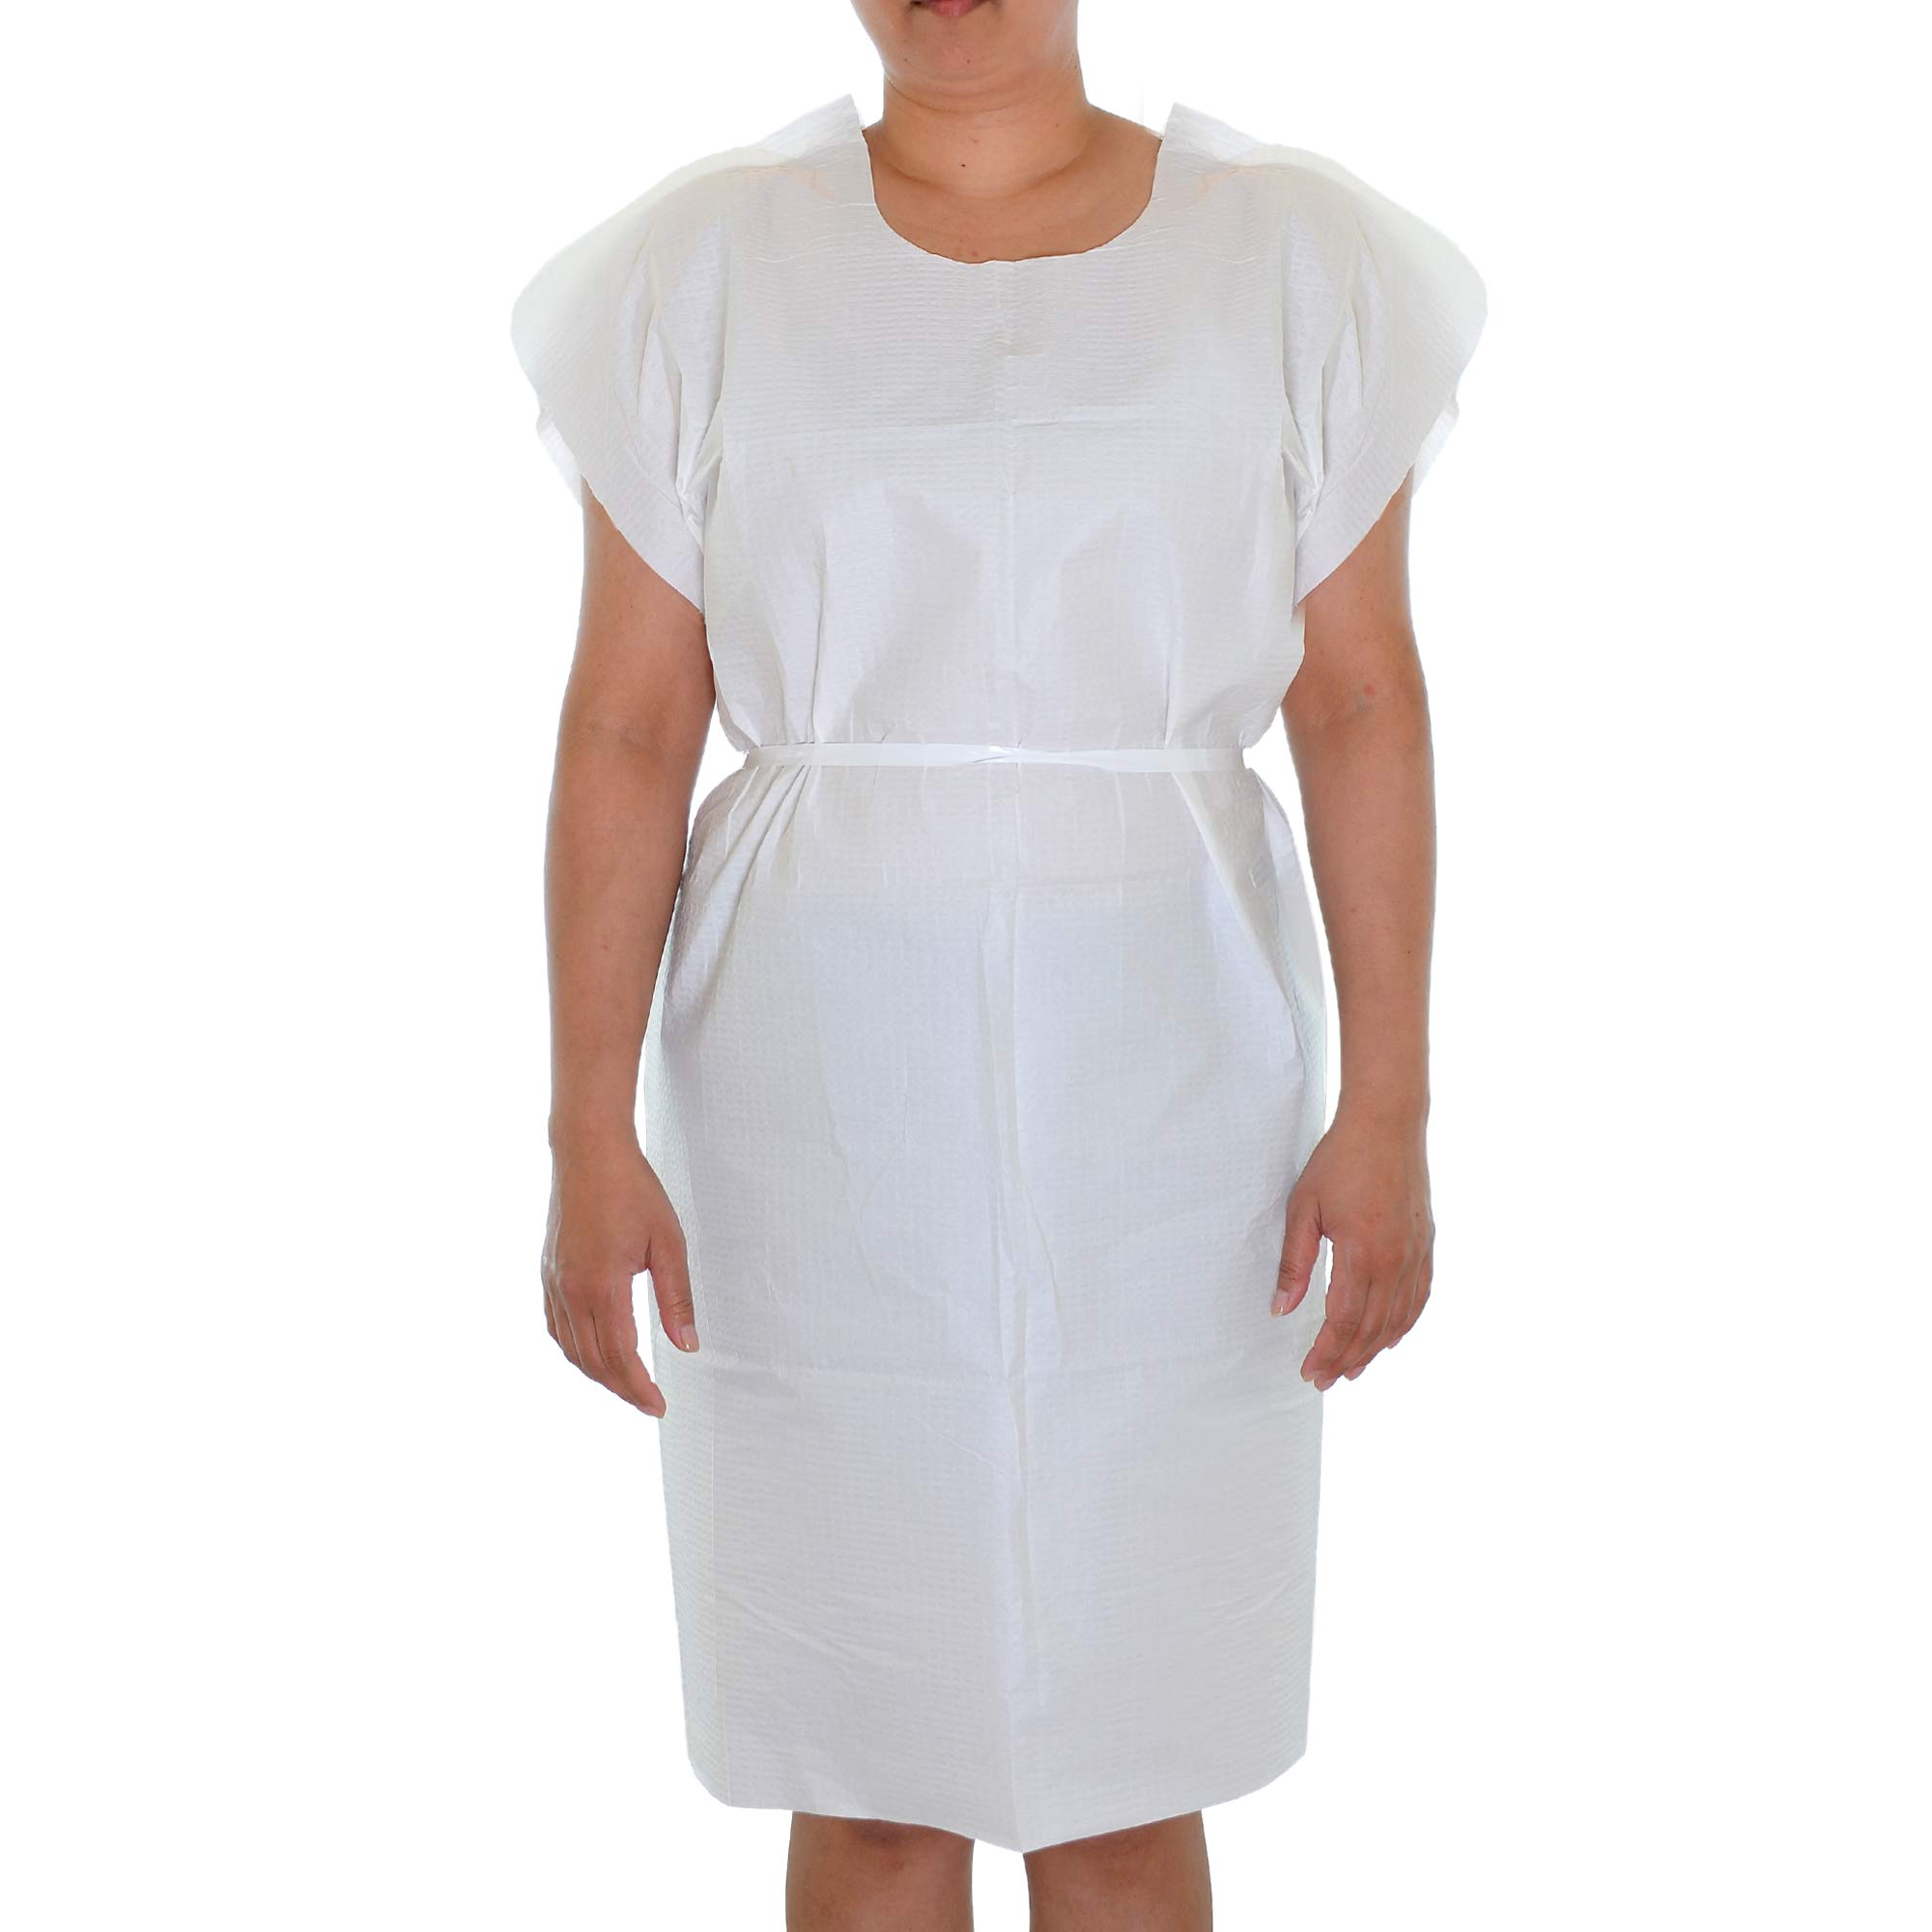 Dealmed Latex-Free Patient Exam Gowns, Tissue/Poly/Tissue 3-Ply, 30'' x 42'', White, 50 count by Dealmed